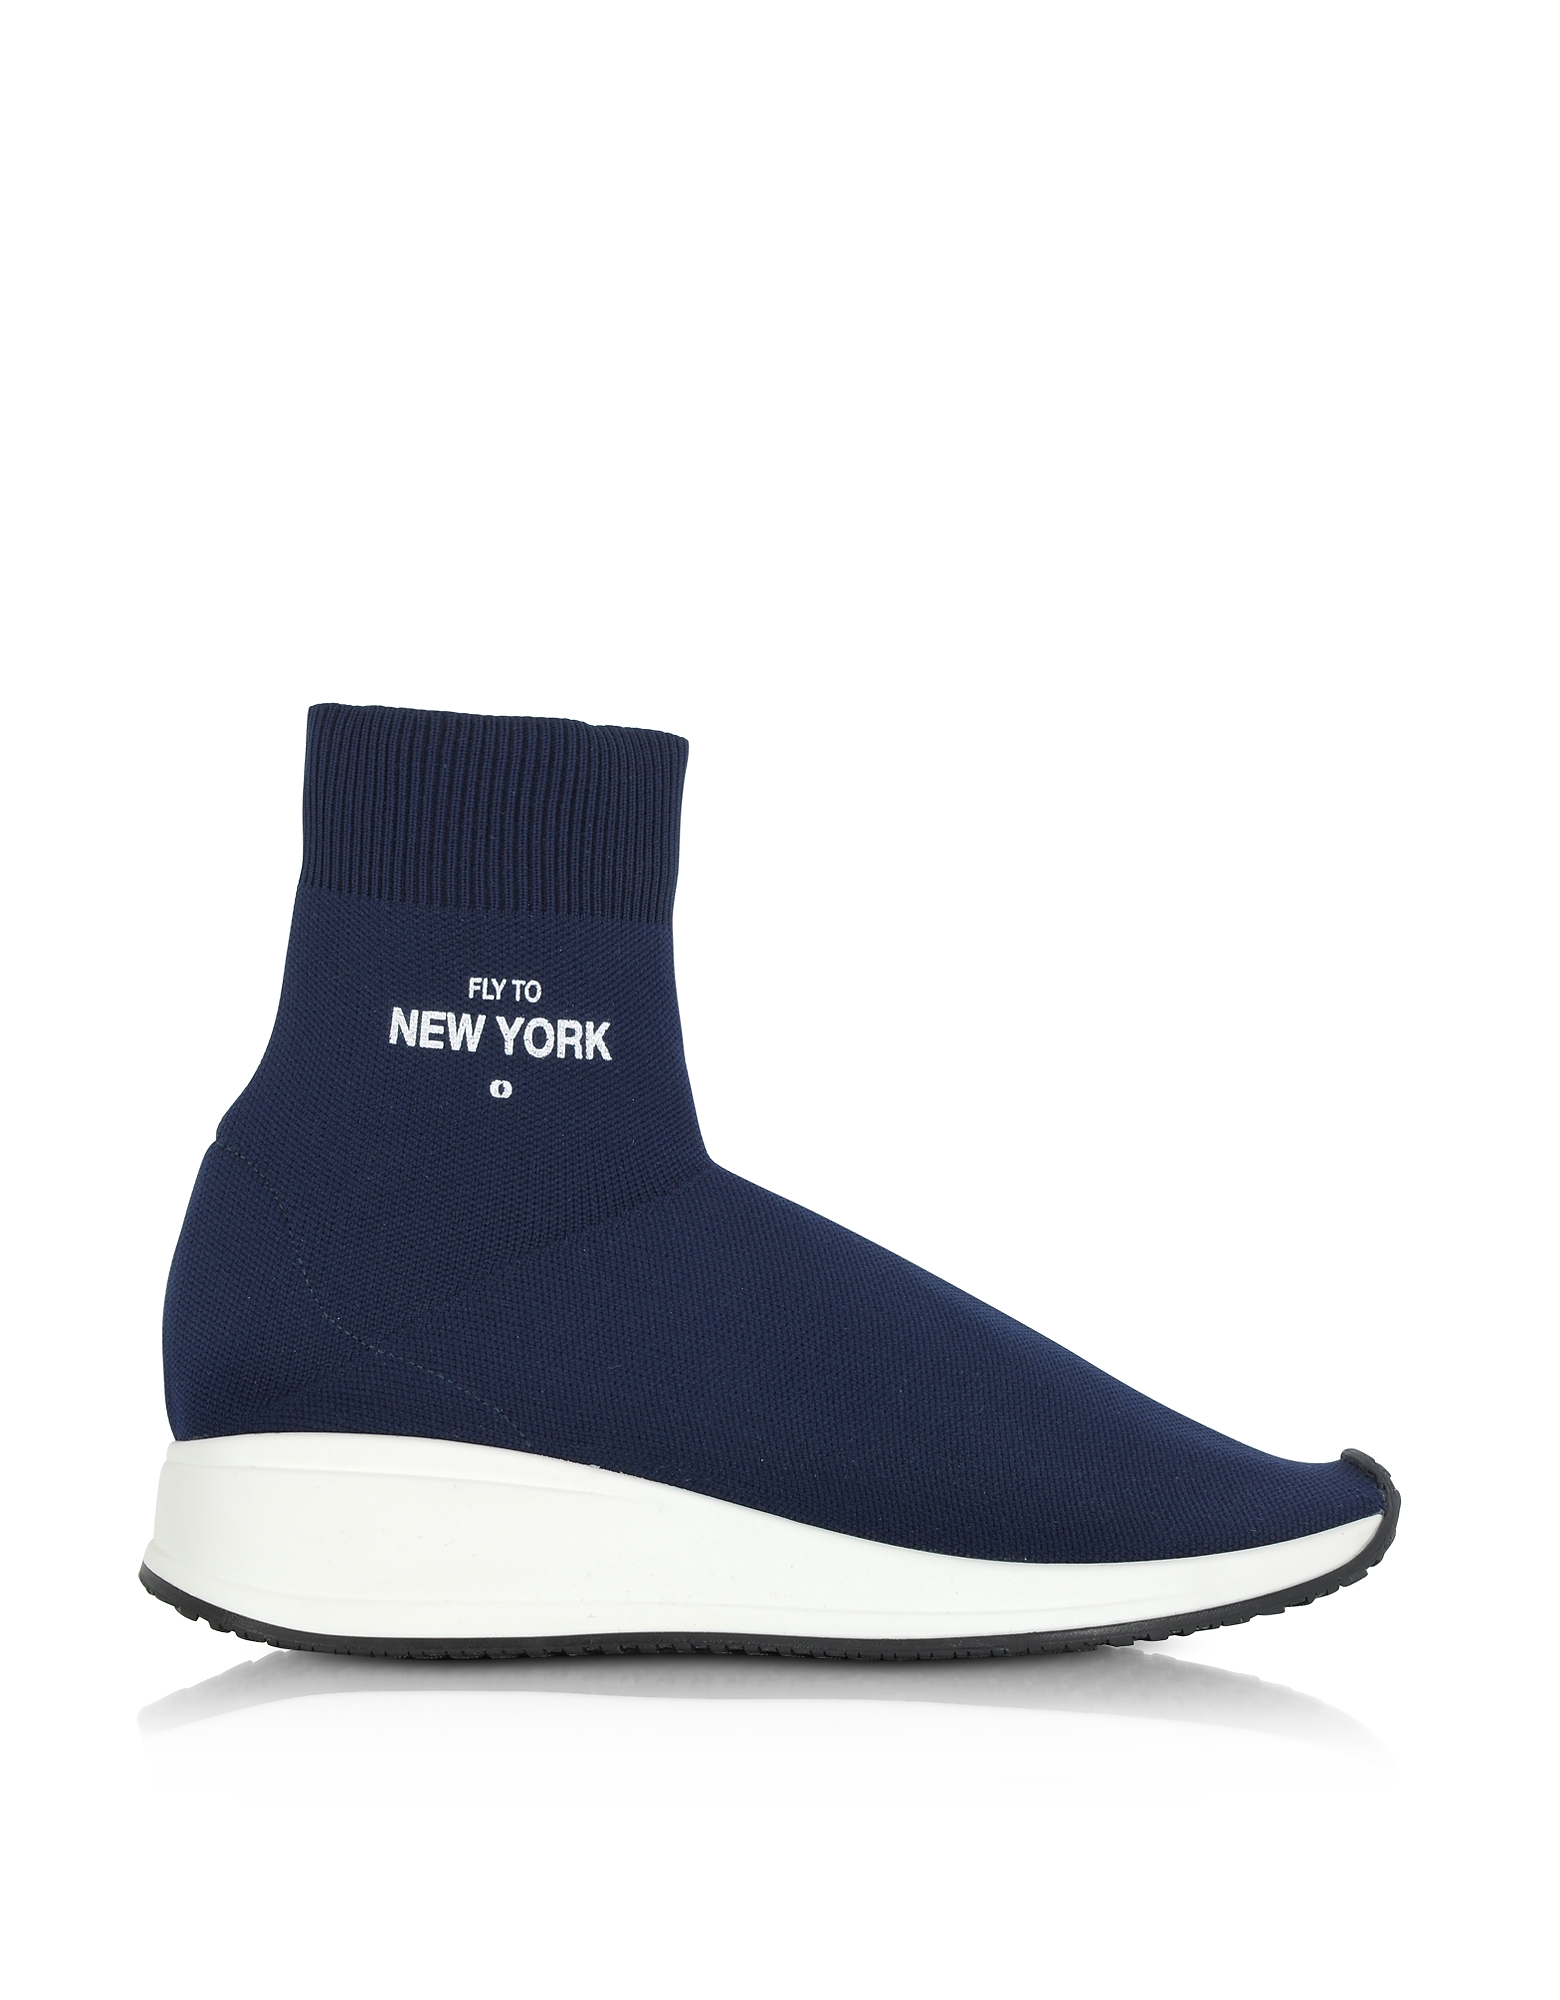 Joshua Sanders Shoes, Fly To New York Blue Nylon Sock Unisex Sneakers